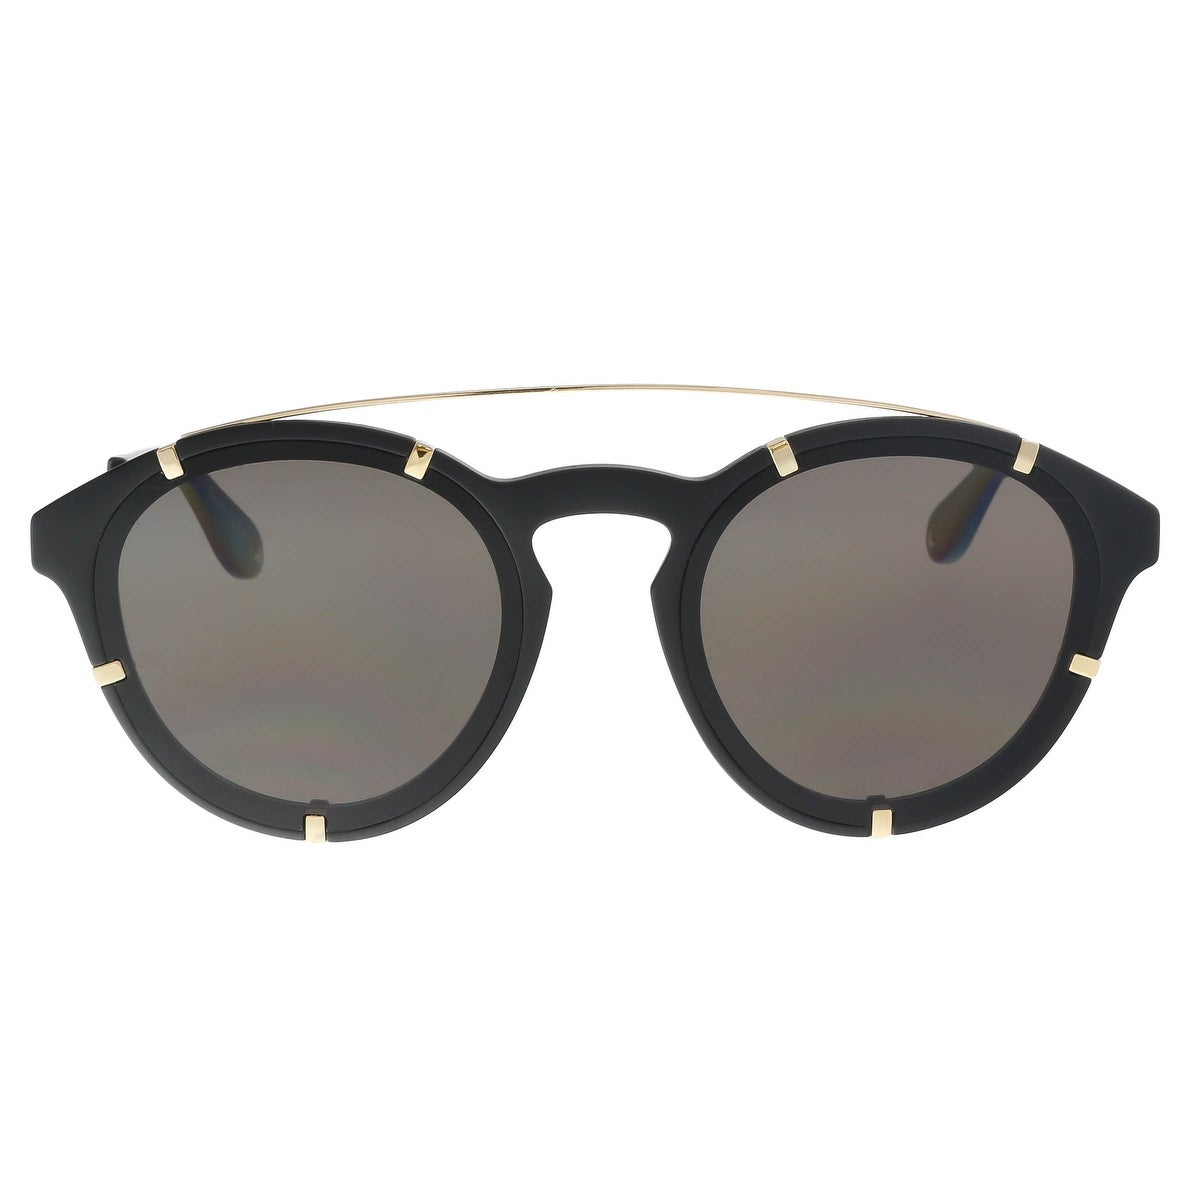 7b6594474e4 Shop Givenchy GV 7088 S 02M2 Black Gold Round Sunglasses - 54-19-150 - Free  Shipping Today - Overstock - 22866103